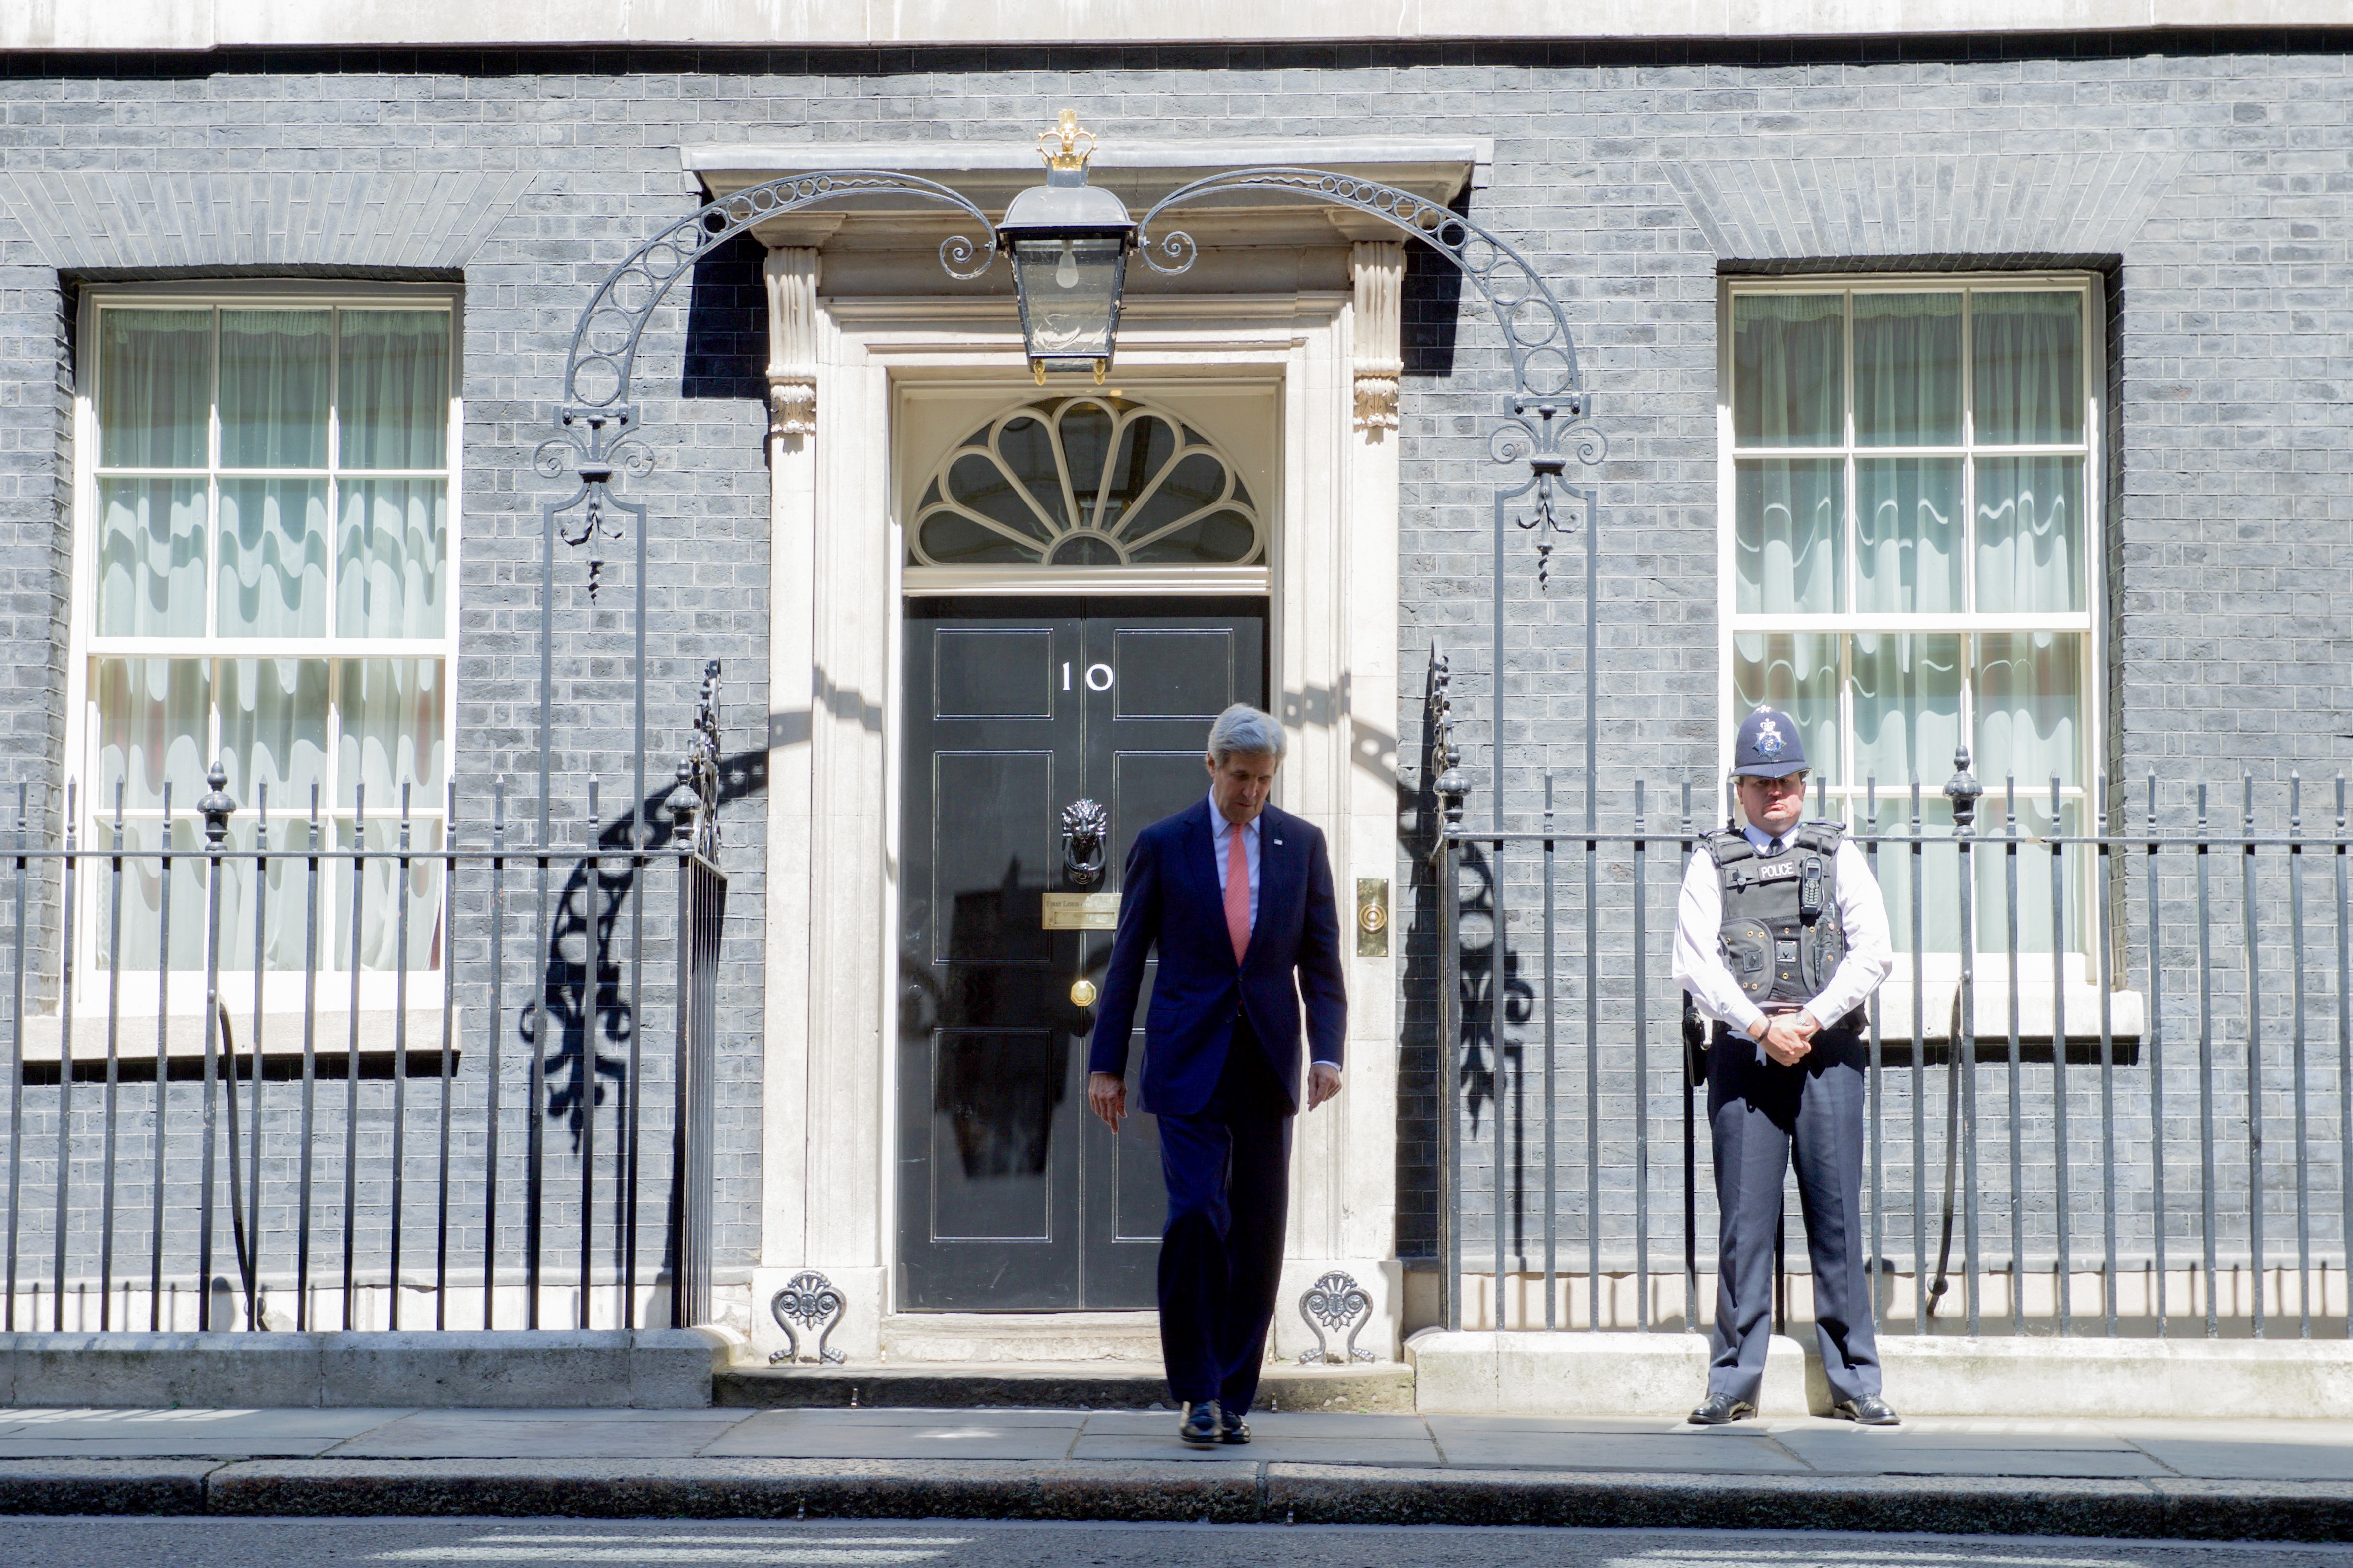 File Secretary Kerry Exits No 10 Downing Street in London